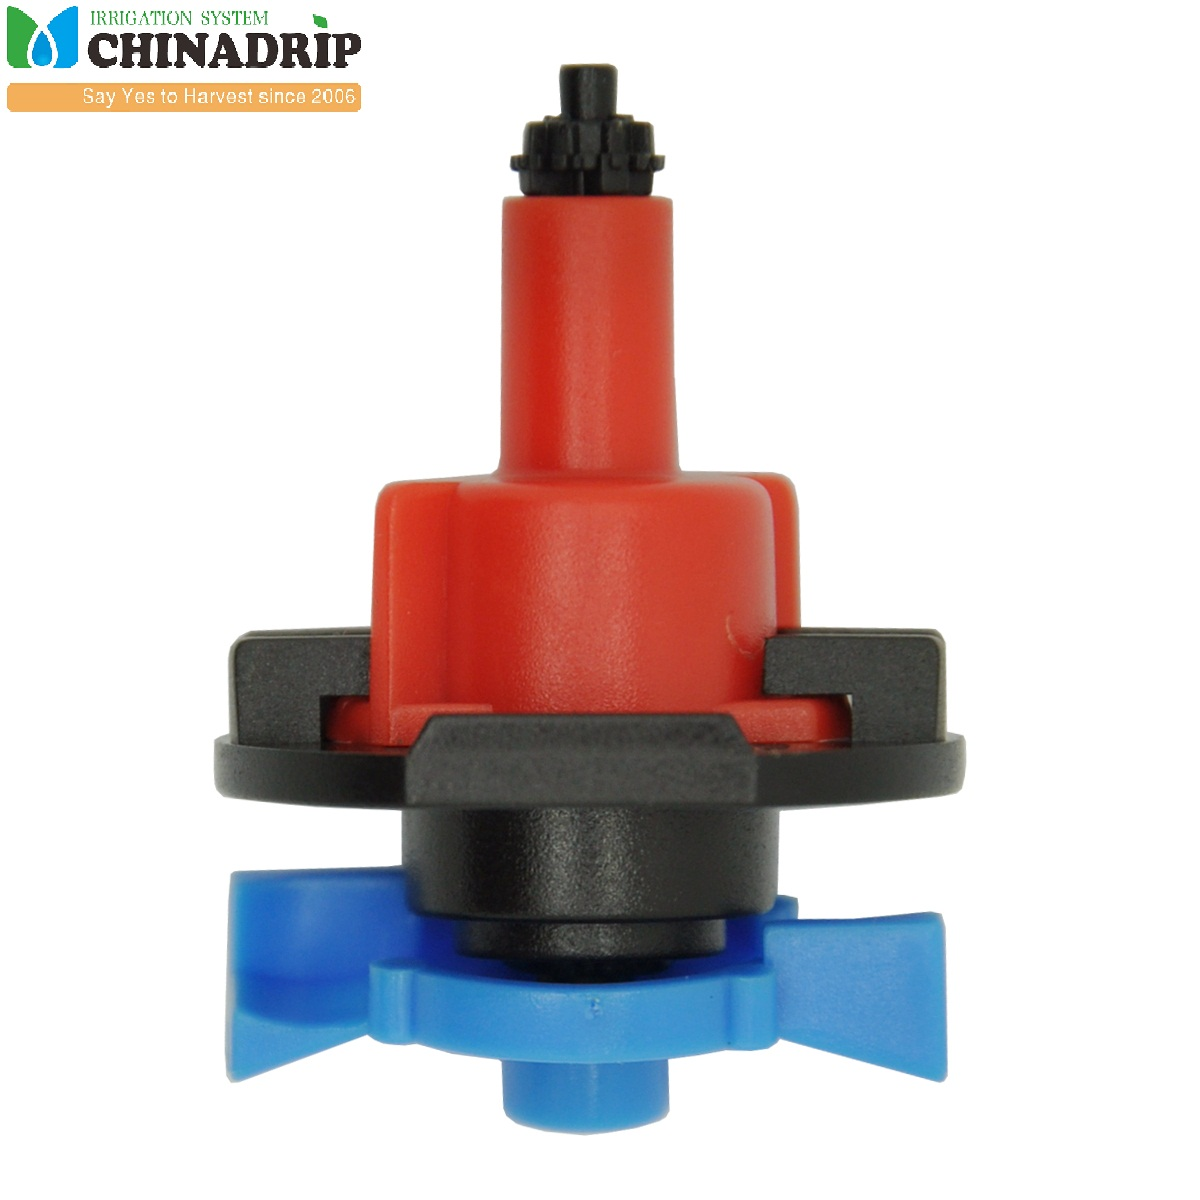 New Products. 360º No Bridge Mini Sprinklers (Upside Down Type)